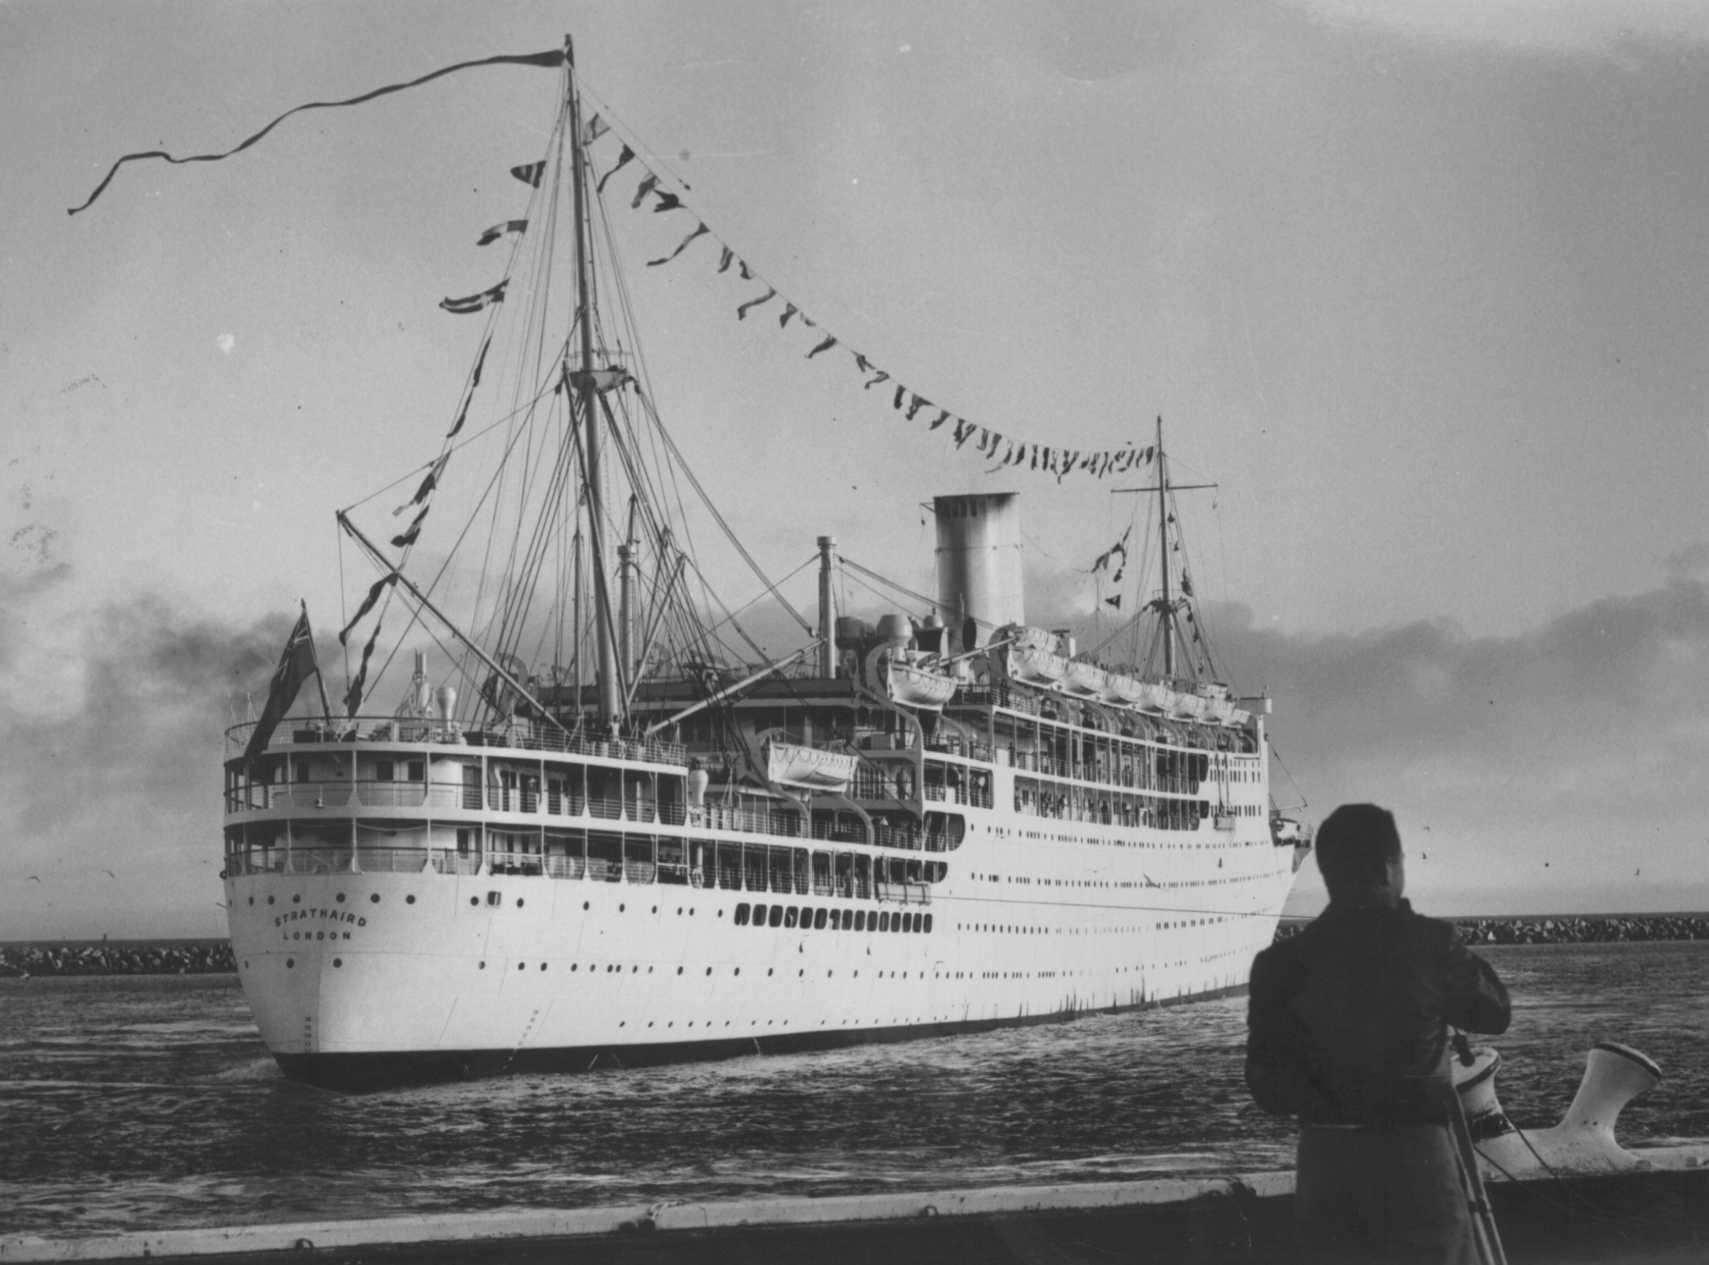 1931 passenger vessel. This image shows vessel with flags flying, leaving for UK and breaking up, 15/5/1961.